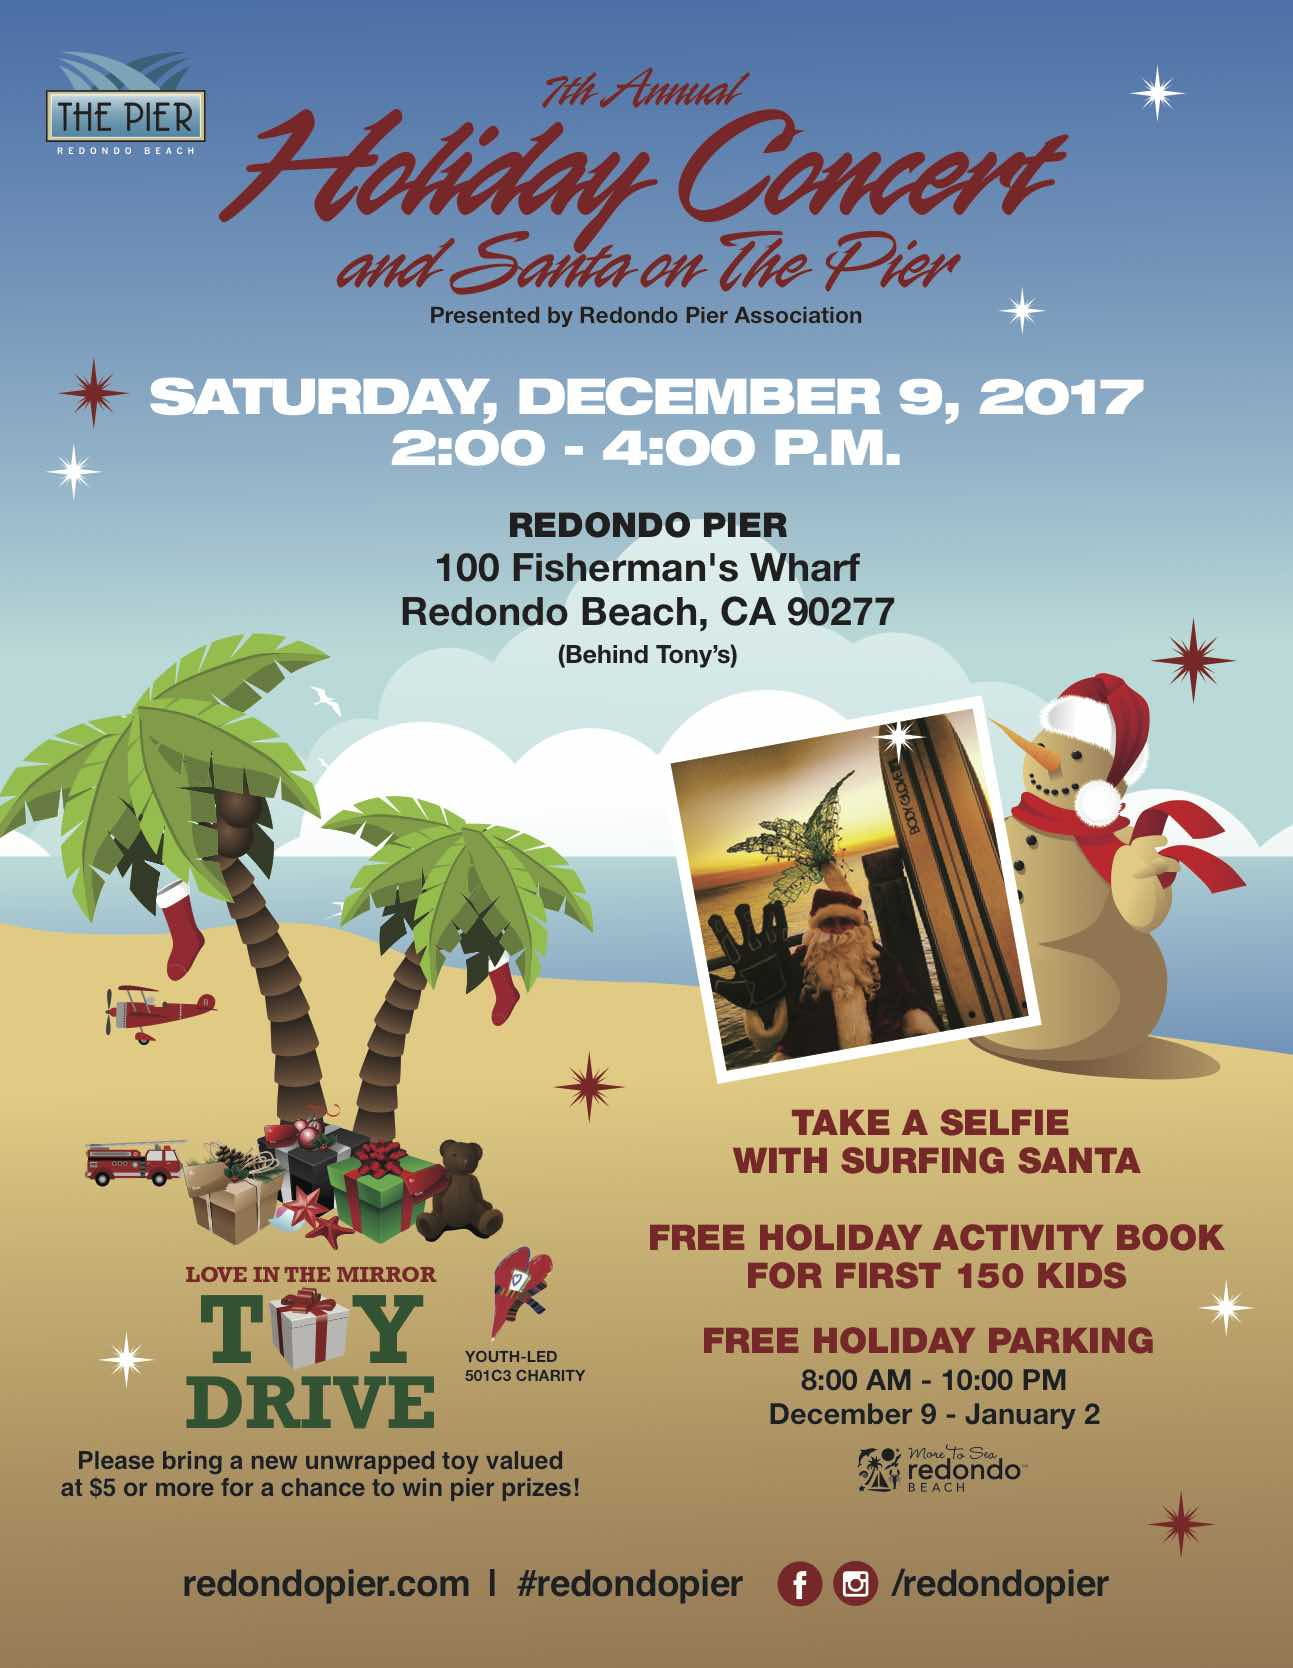 The Redondo Pier's 7th Annual Holiday Concert and Santa